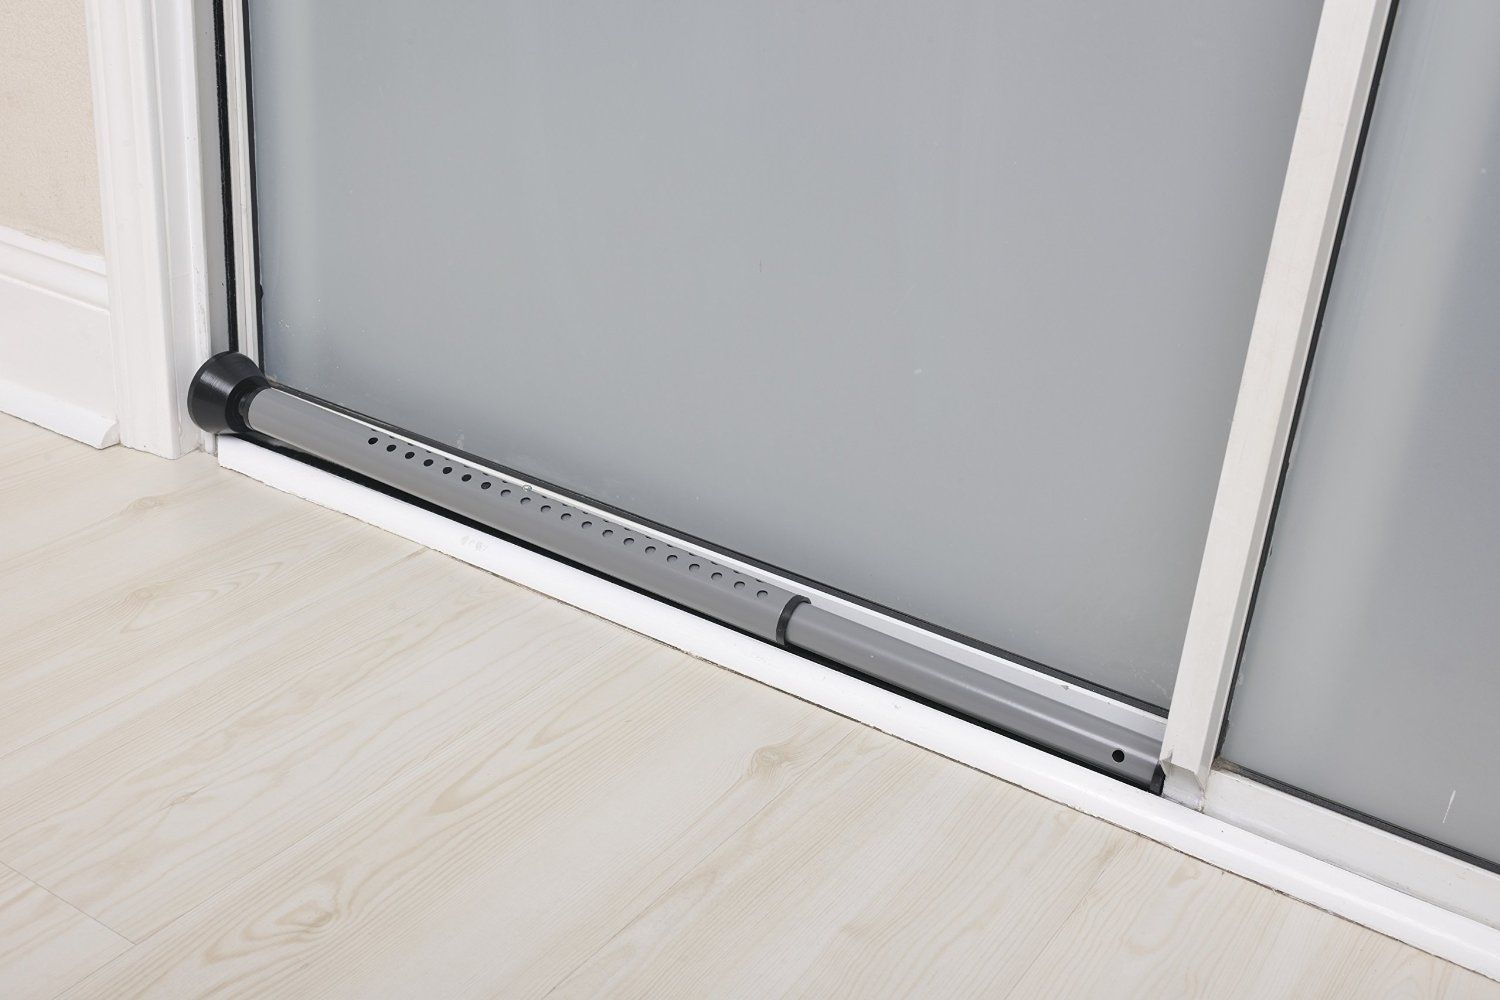 Sliding Door Security Bars For Added Security Home Renovation